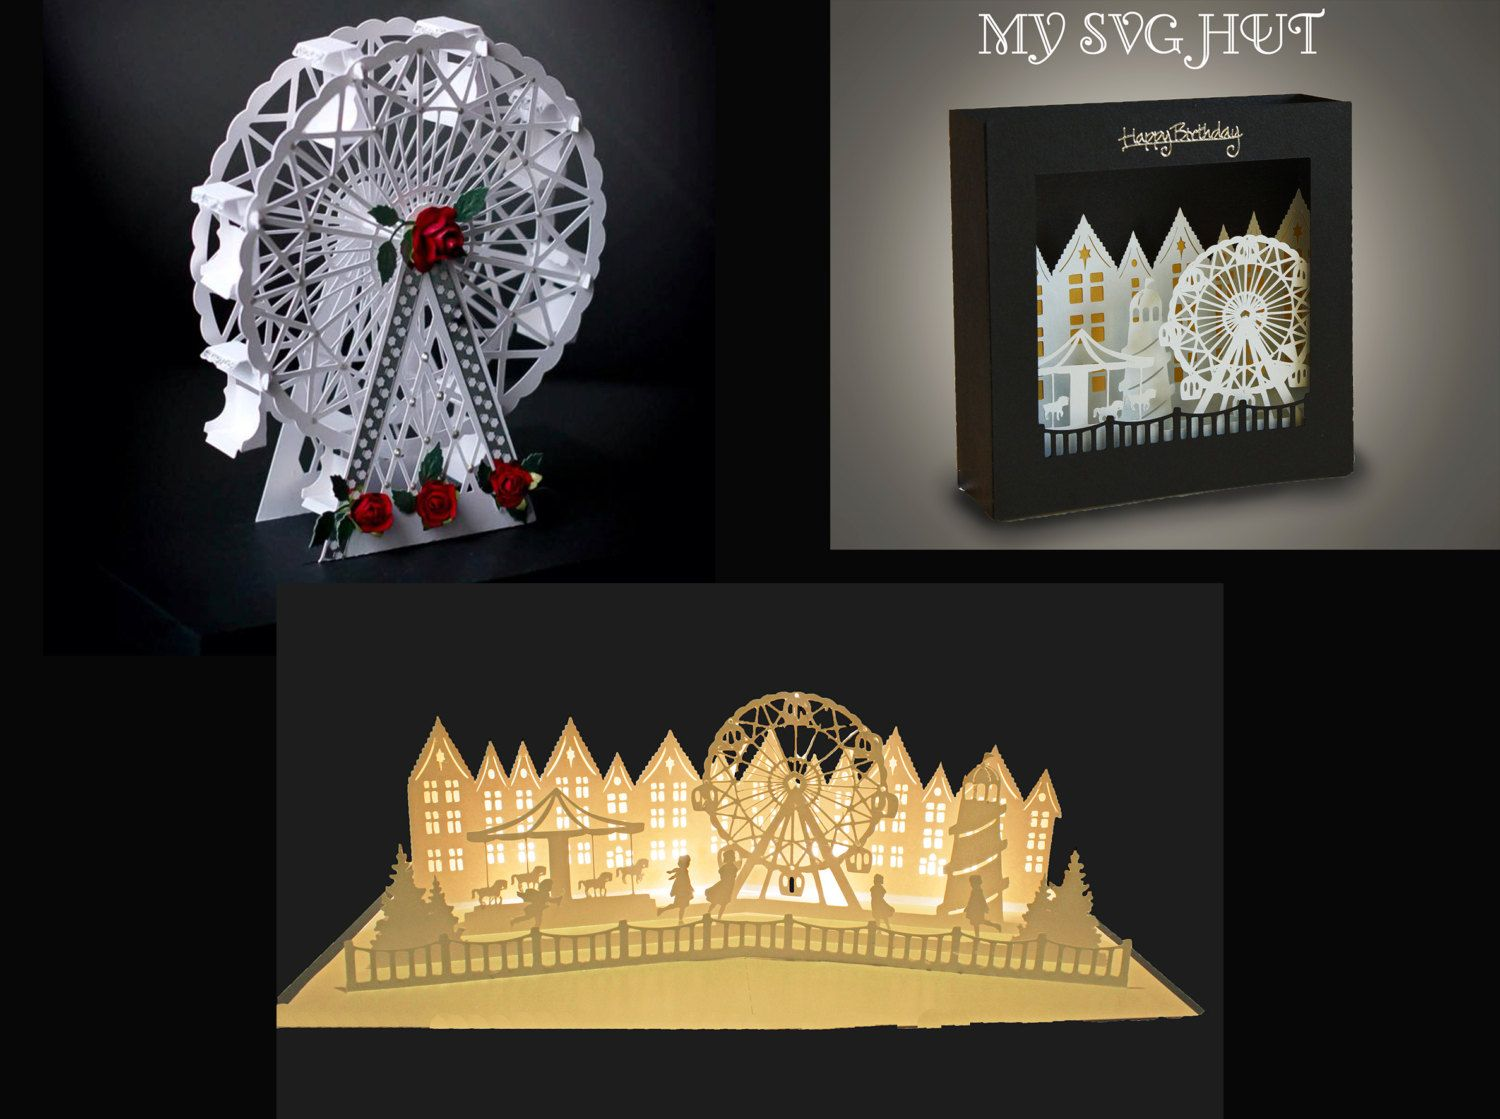 3D SVG PDF Set of 3 All the fun of the fair designs